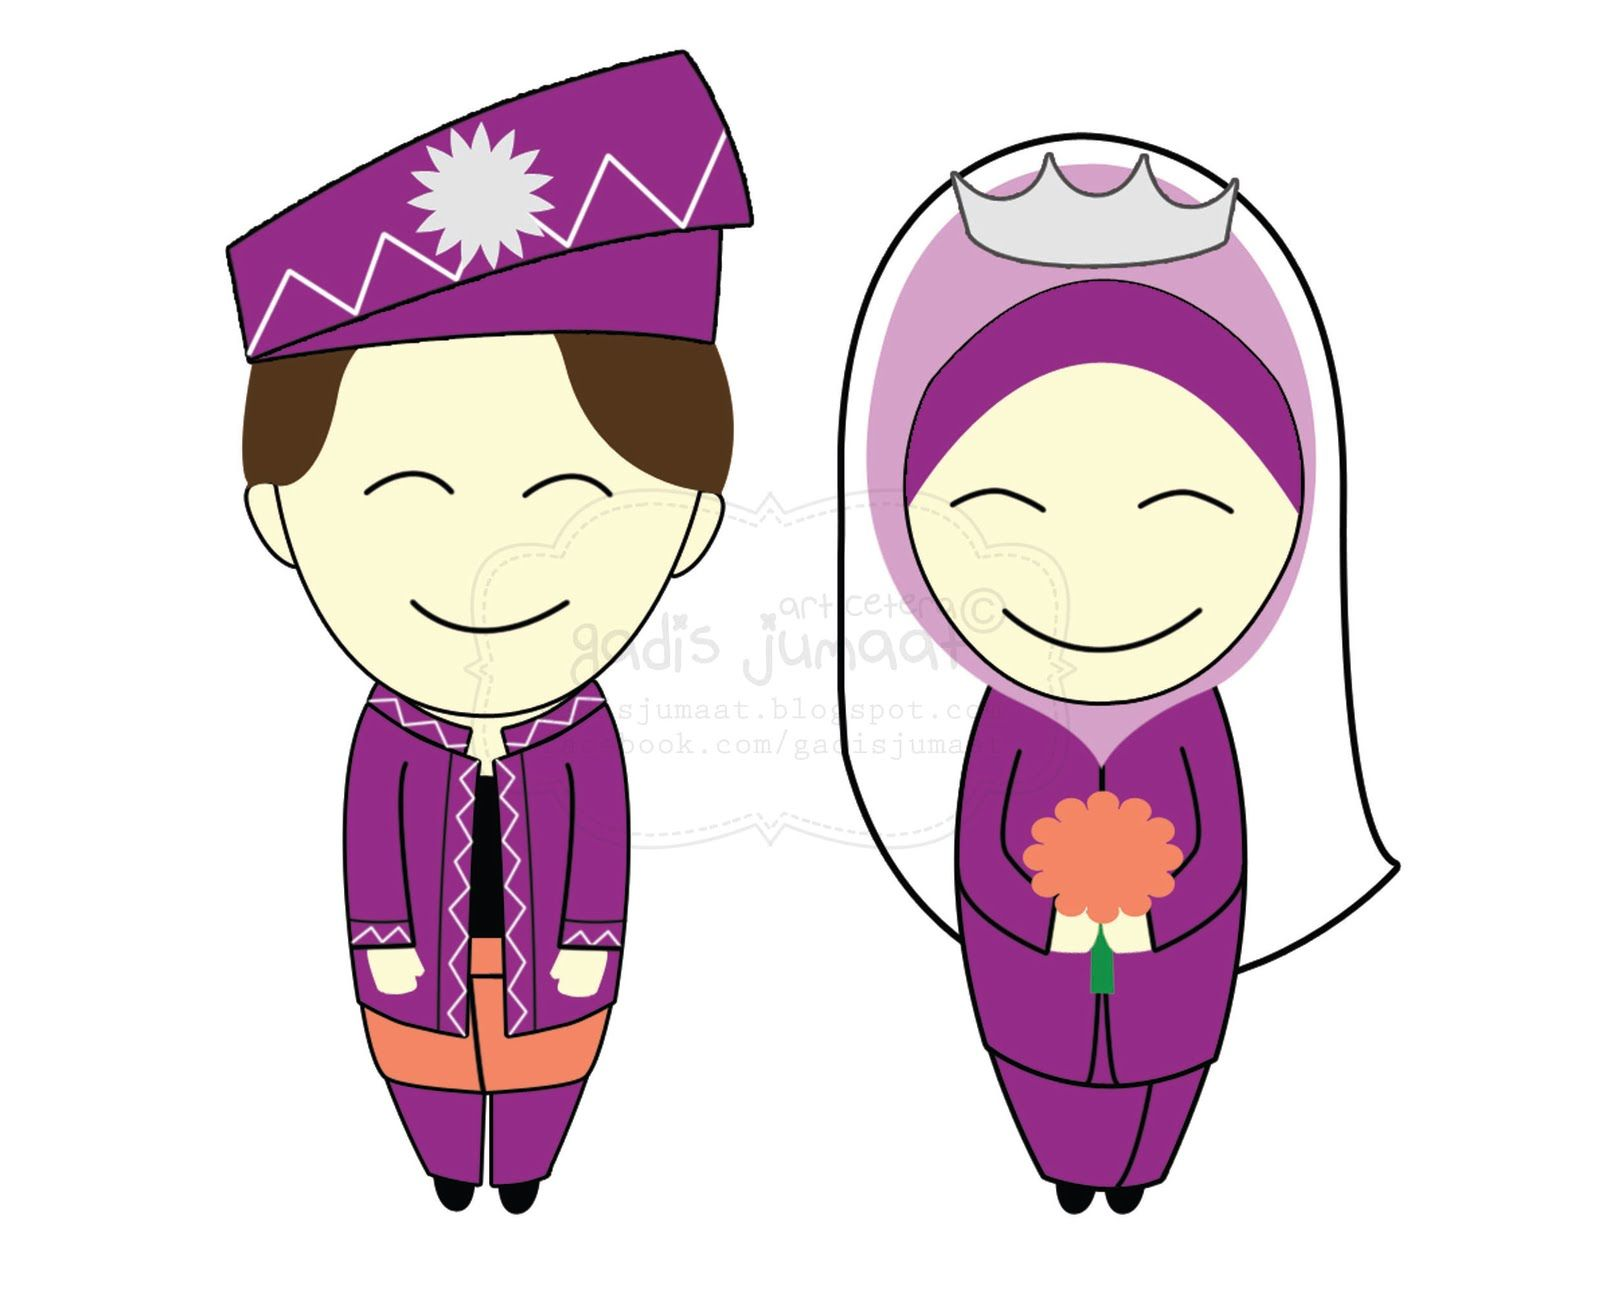 Muslim Wedding Cartoon Google Search Clip Art Pinterest